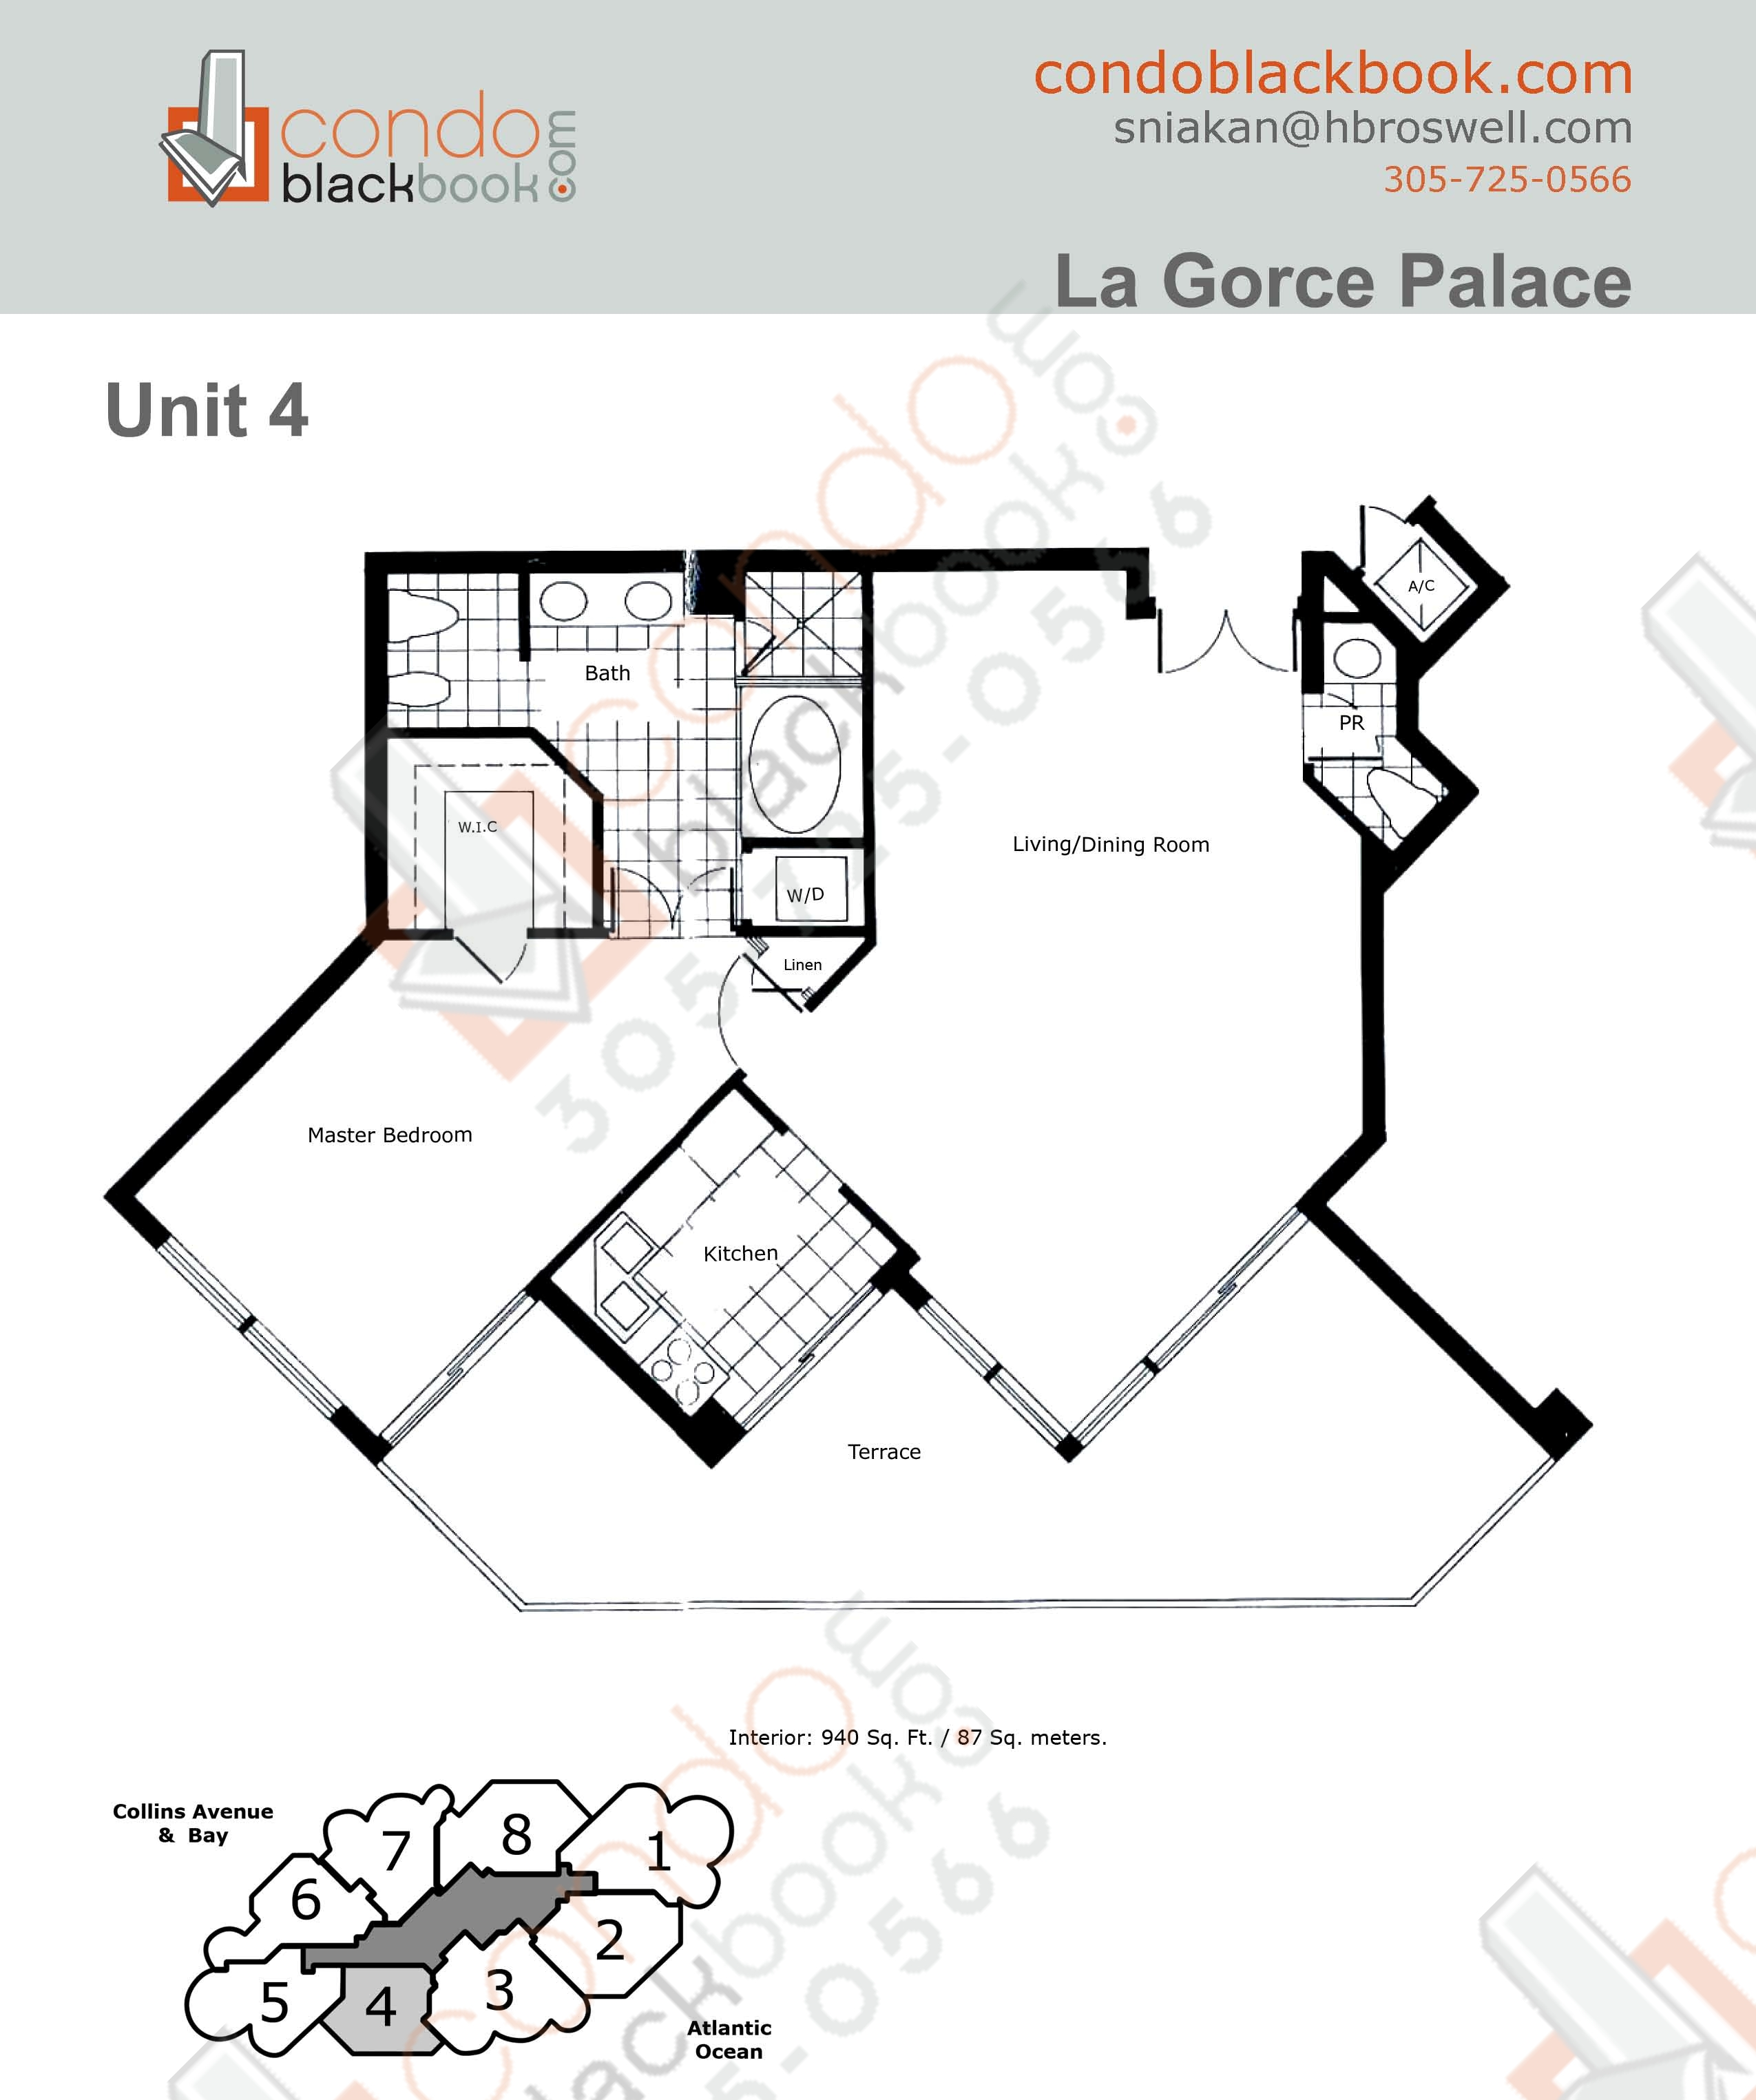 Floor plan for La Gorce North Beach Miami Beach, model 04, line 04, 1/1.5 bedrooms, 940 sq ft